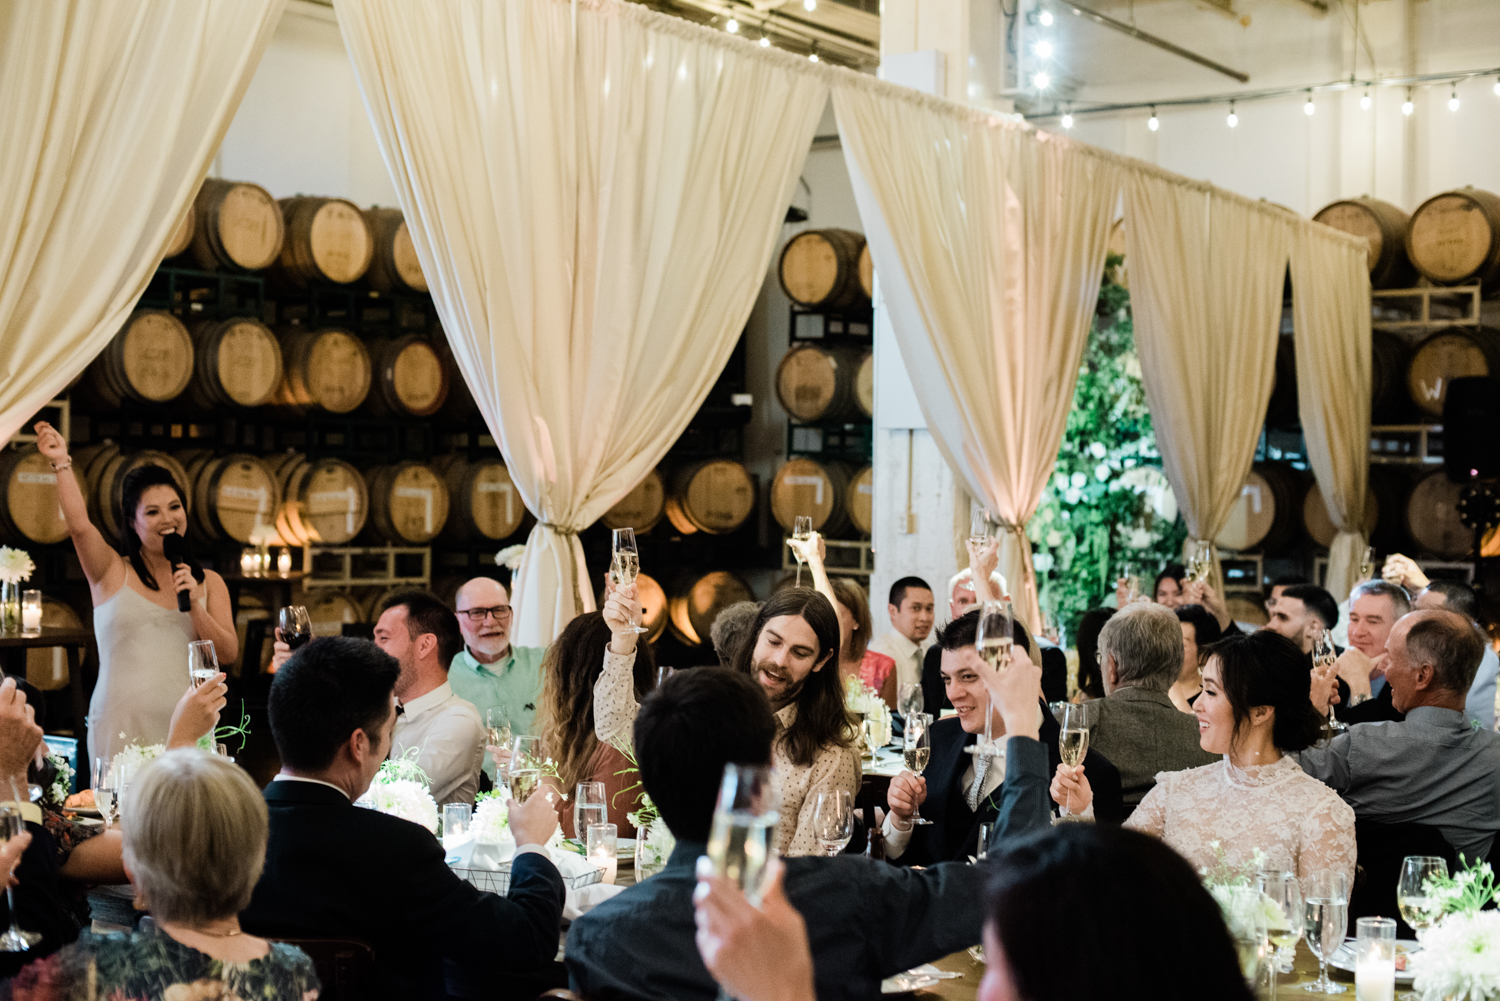 Potrero_Hill_Wine_Works_Wedding_ChristinaRichards_091.jpg